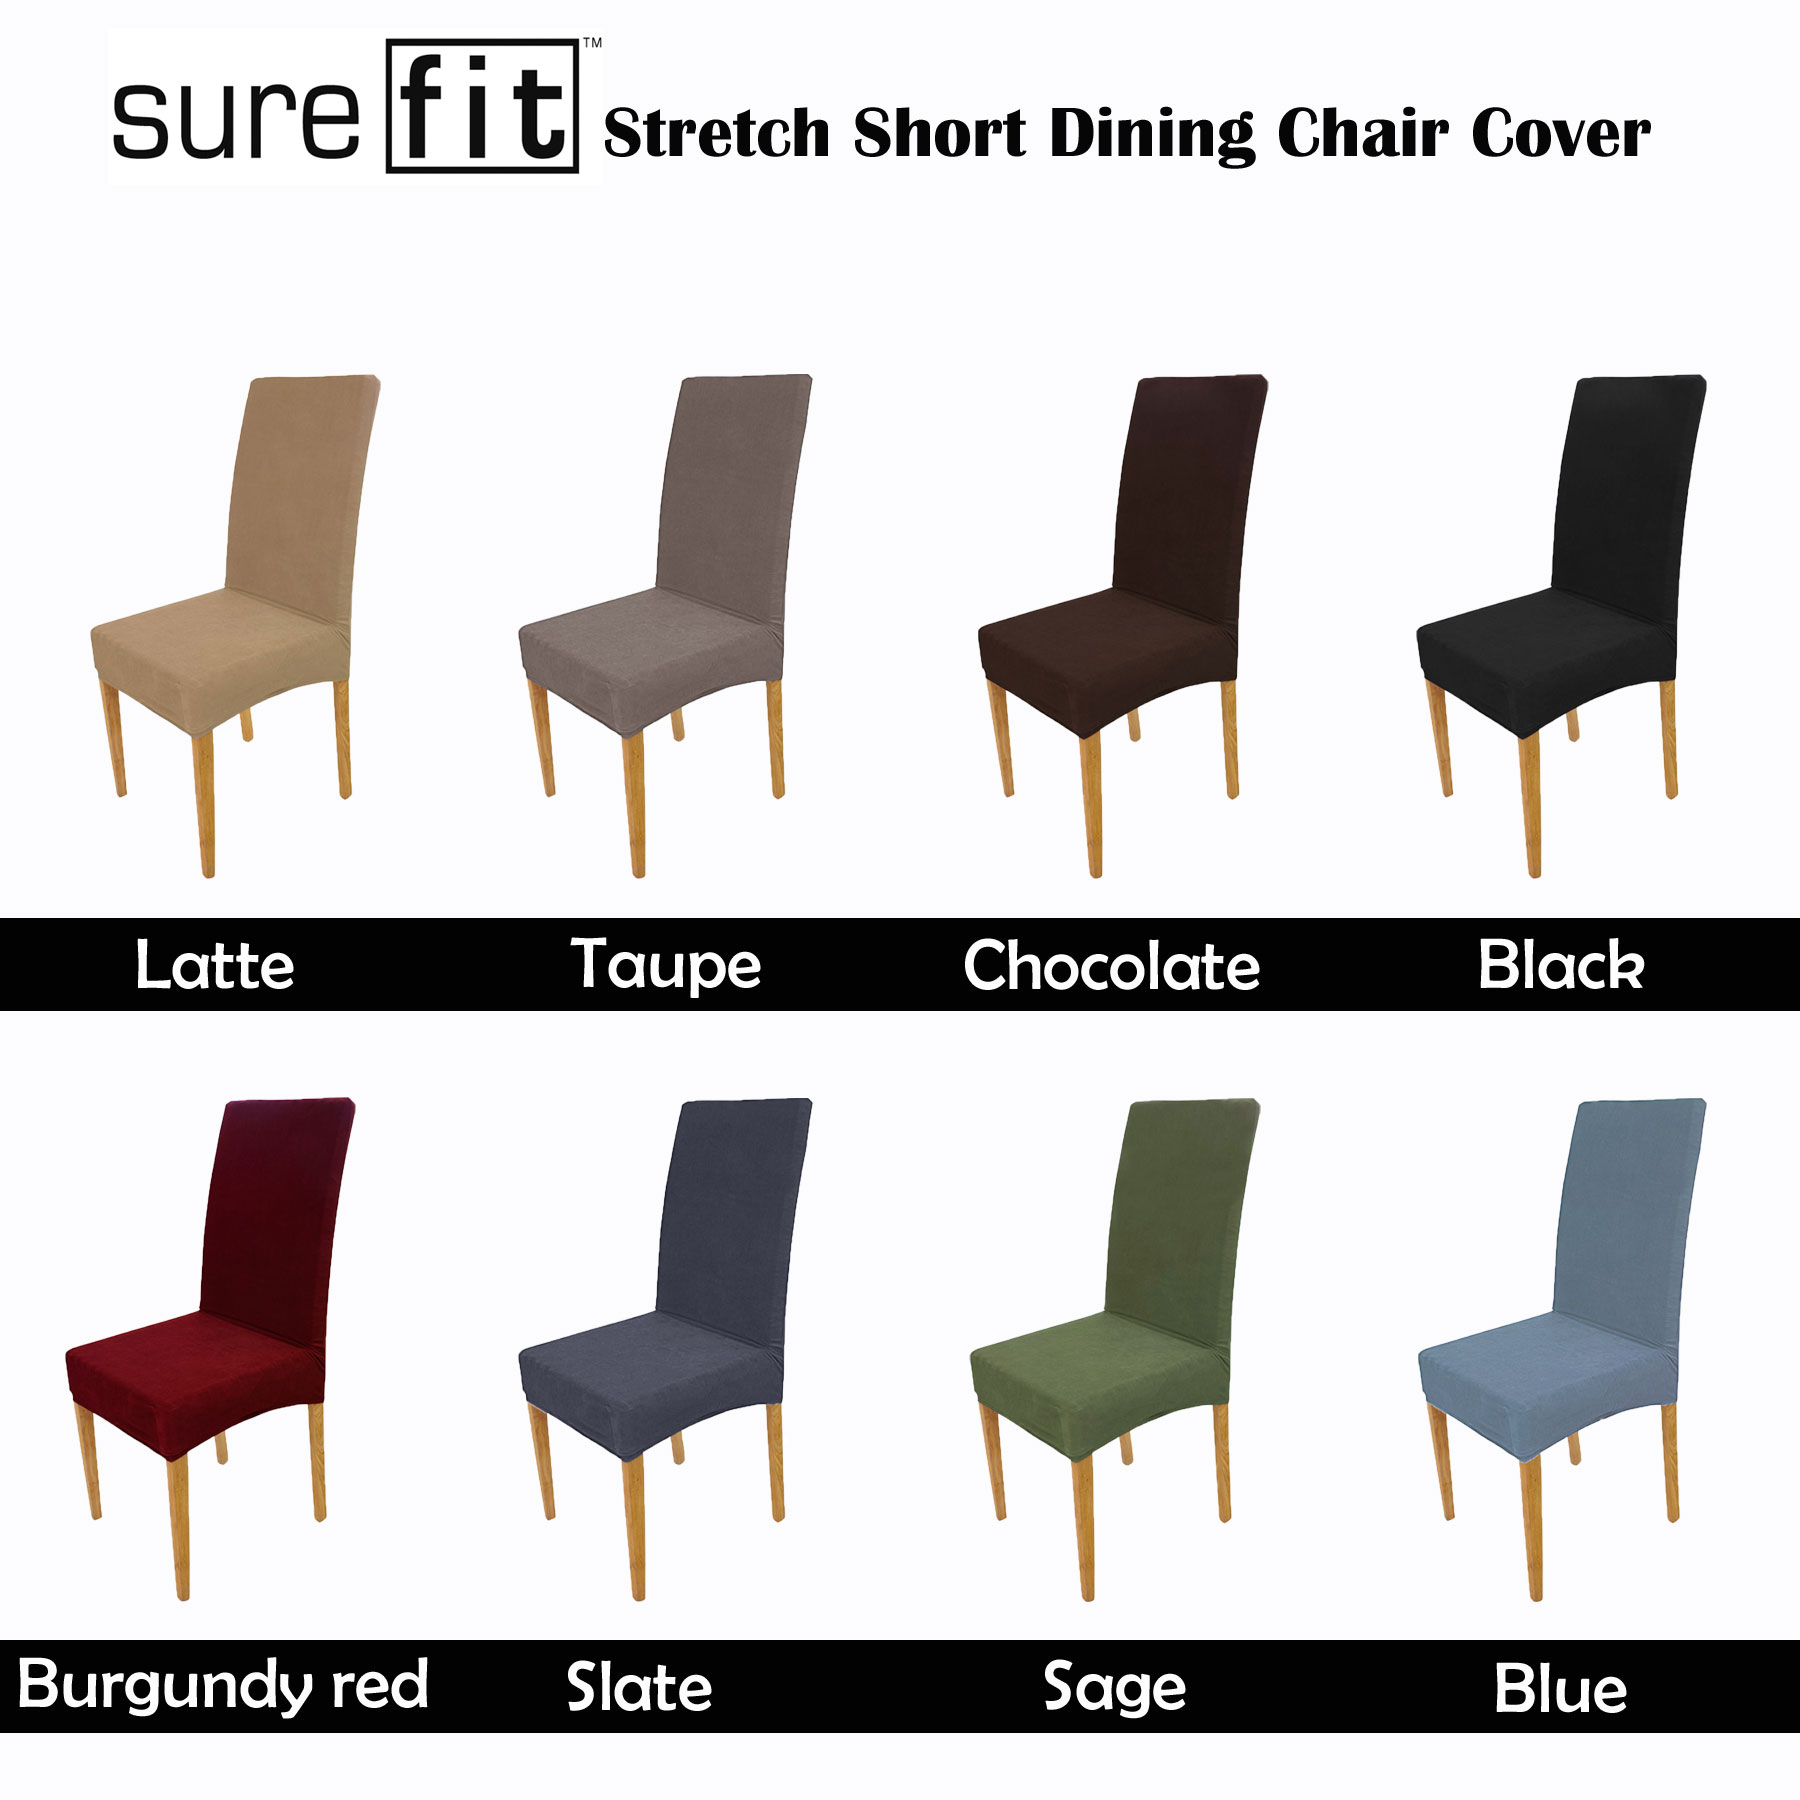 Surefit Chair Covers Details About Color Choice Surefit Stretch Short Corduroy Dining Chair Cover Machine Washable